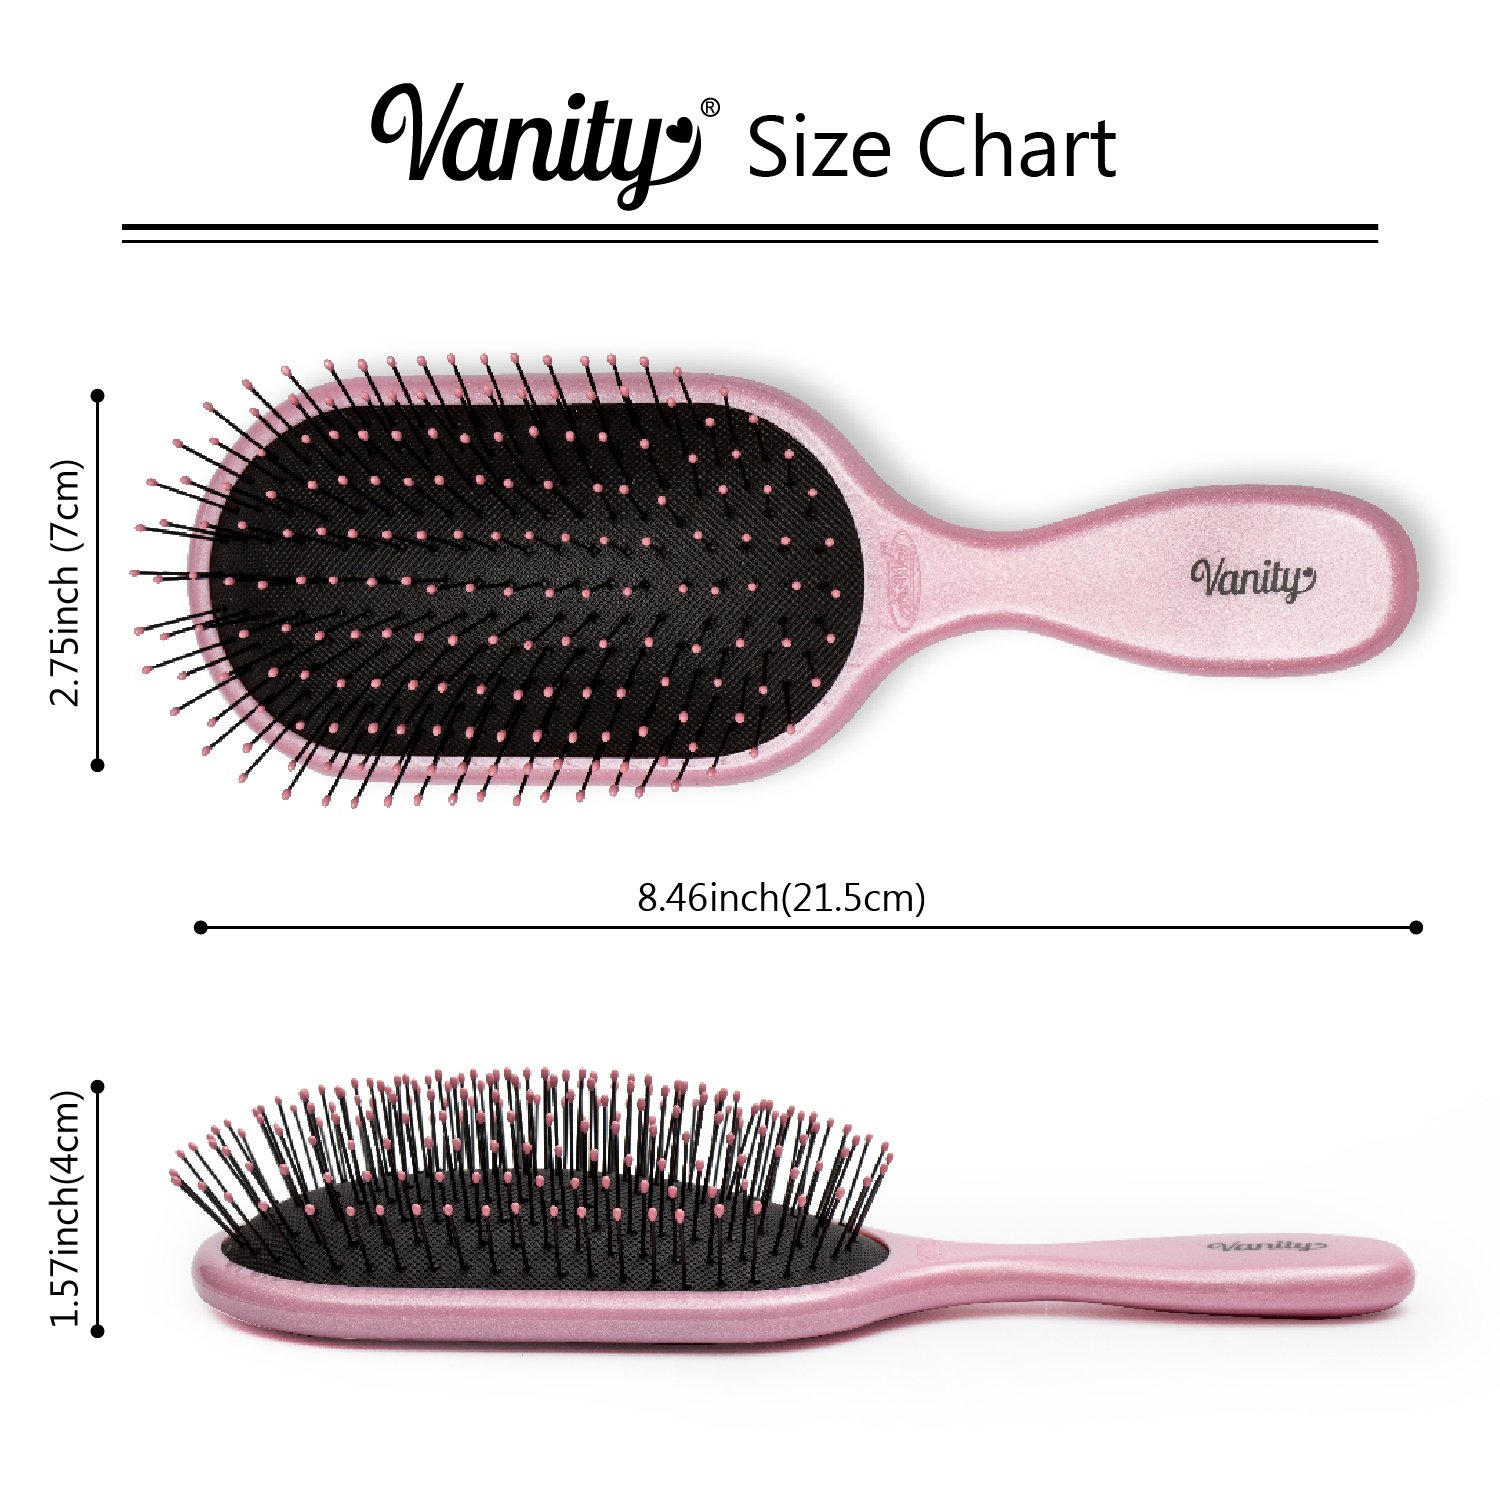 NuWay 4Hair 2-4-1 PRICE! Traveler with FREE Vanity! Best Patented Professional Detangling Travel and Paddle Brushes - For Wet Dry Thin Fine Thick Curly or Straight Hair - For Adults & Kids (Pink) by NuWay 4Hair (Image #4)